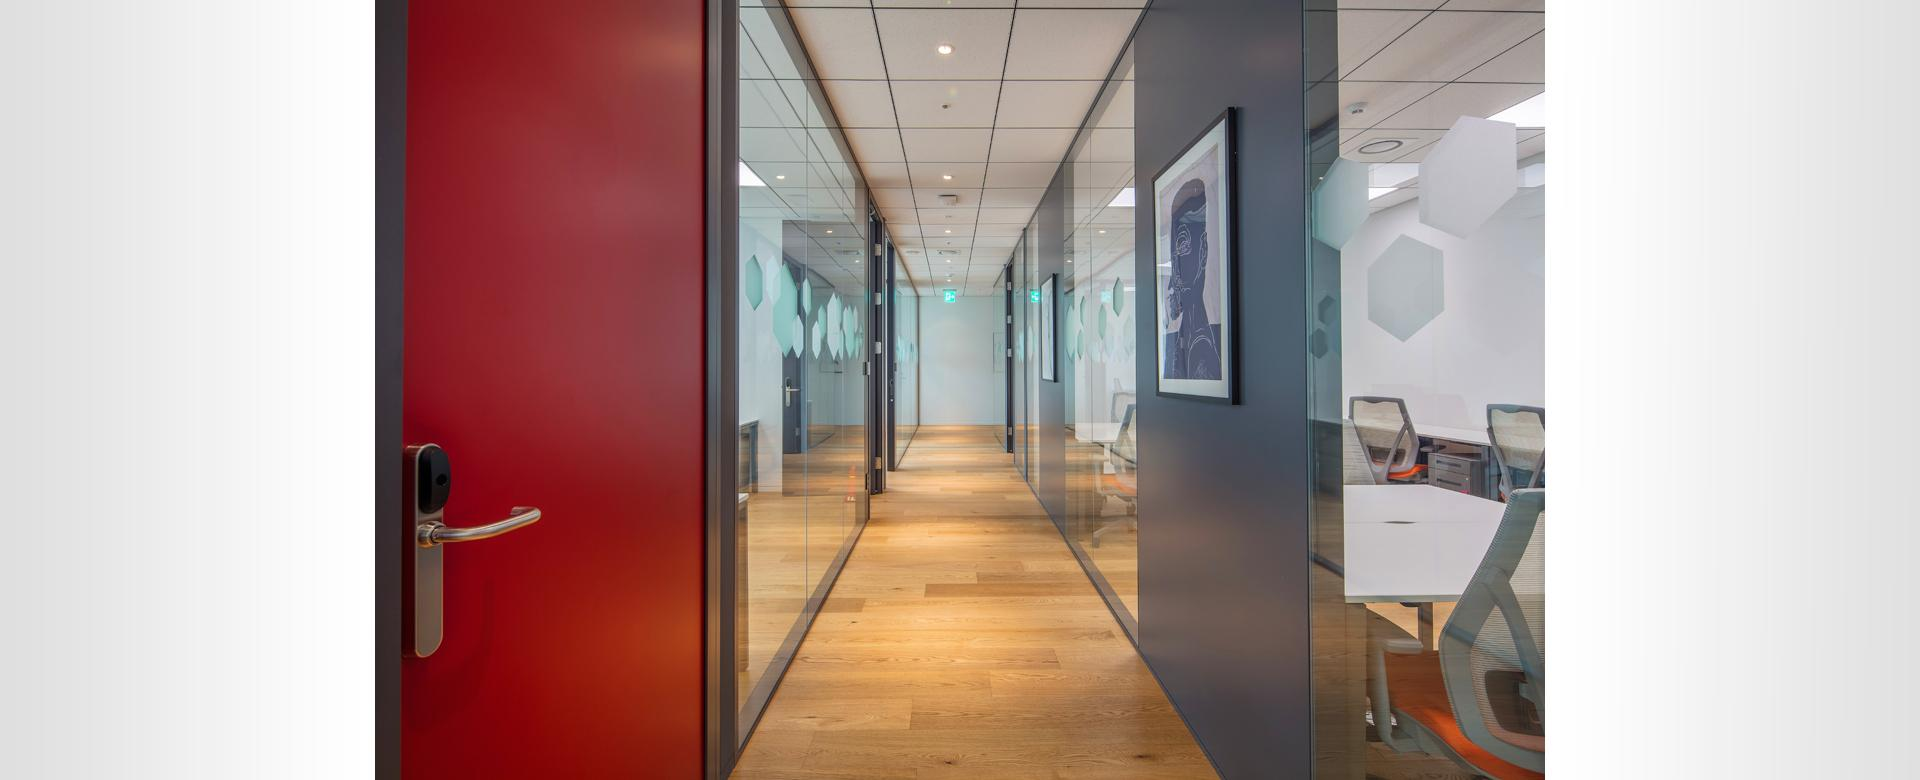 high acoustic performance, flexible office spaces as well as creative meeting spaces